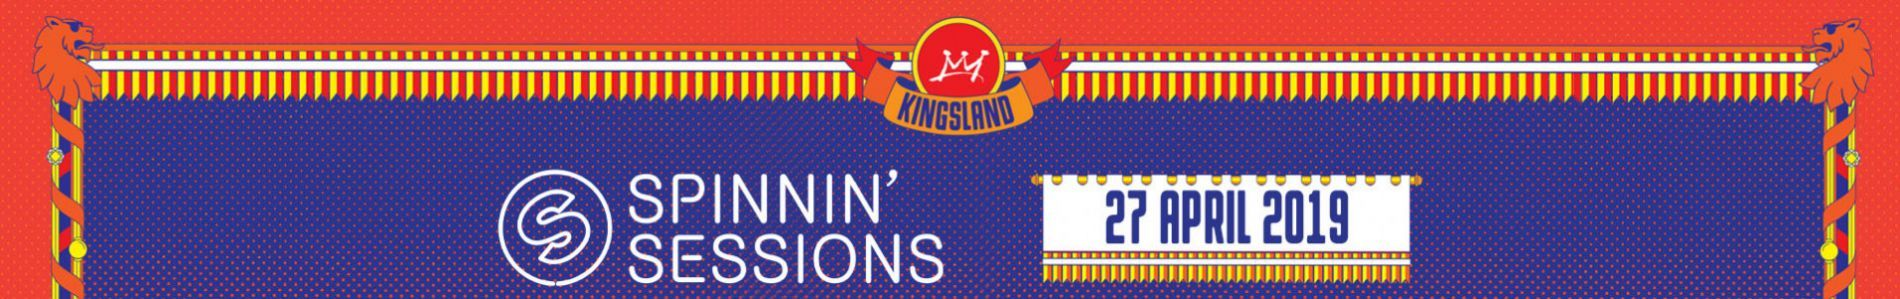 Spinnin' Sessions Spinnin' Sessions | Kingsland 2019